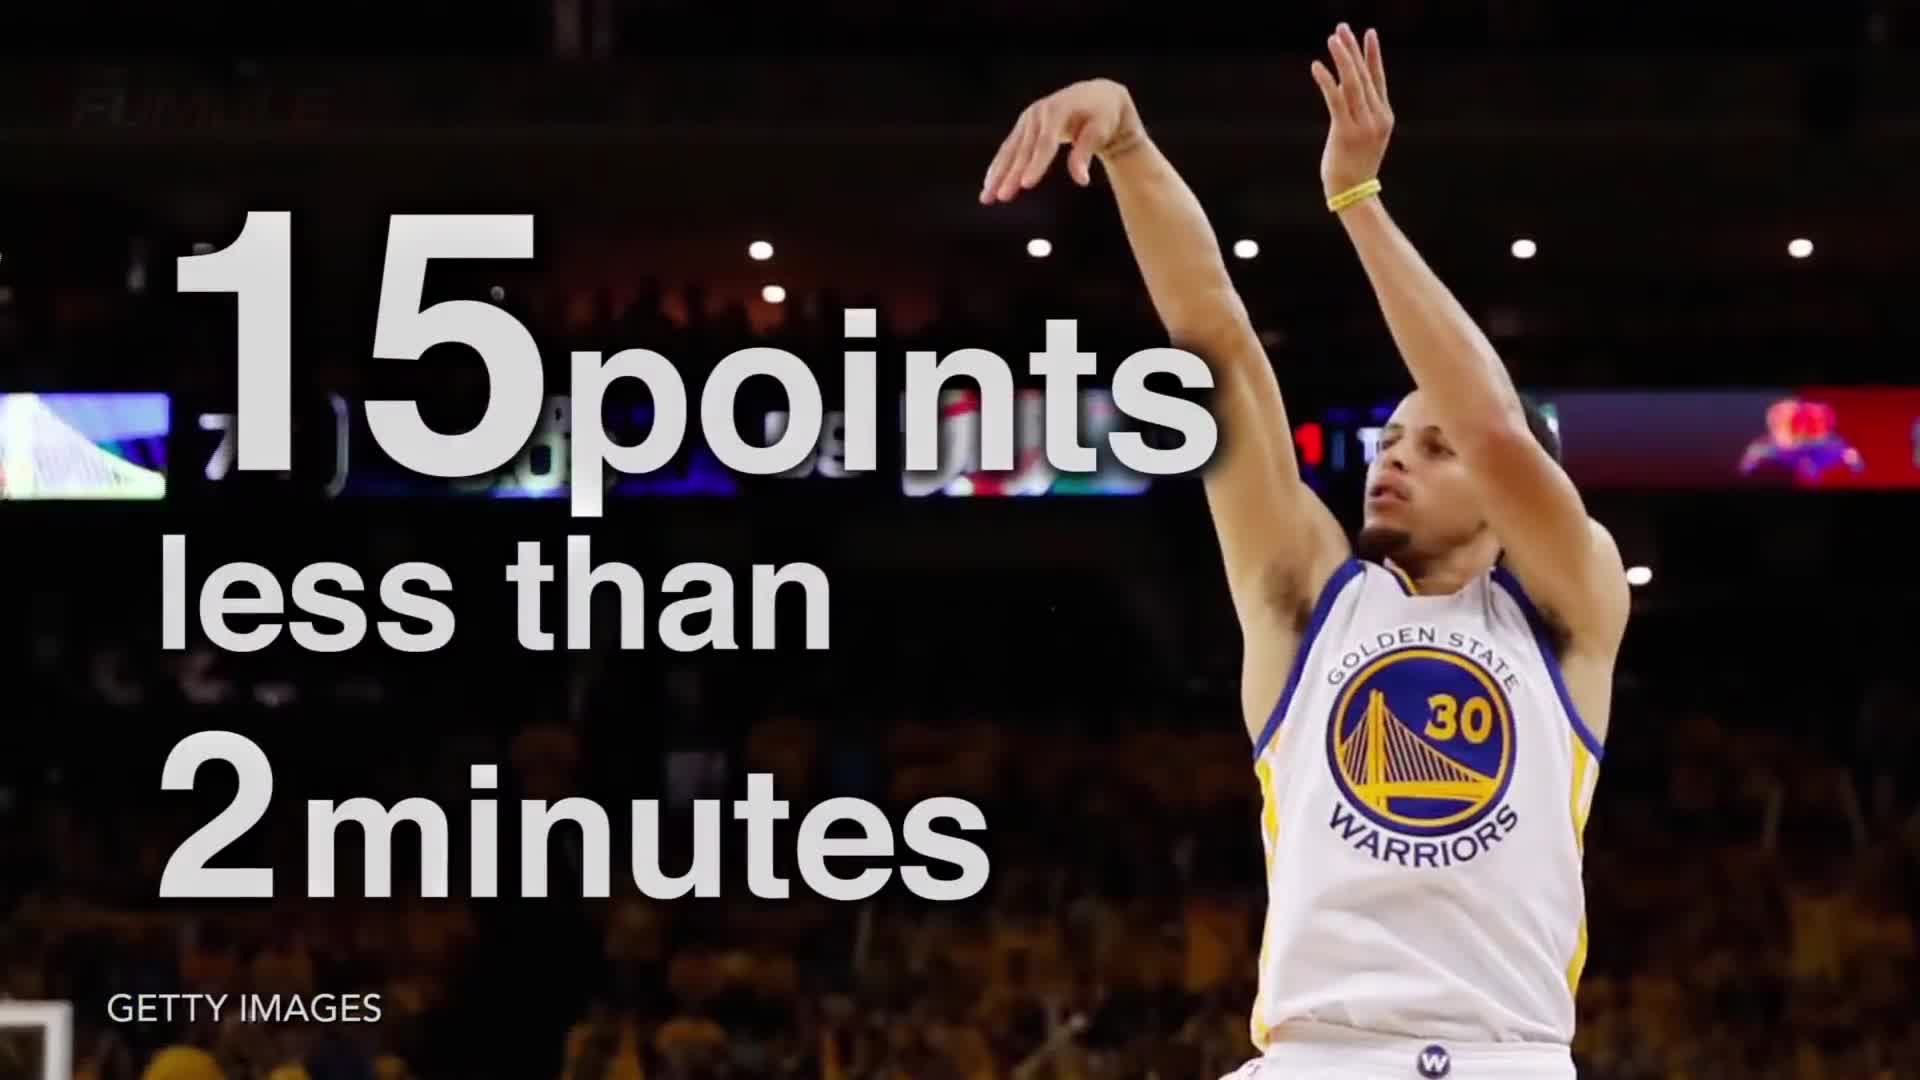 gets punched by fan, golden state warriors, kd, kevin durant, oklahoma city thunder, playoffs, steph curry, steph gets punched, stephen curry, steps on curry, thunder vs. warriors, Stephen Curry 15 points in less than 2 minutes GIFs